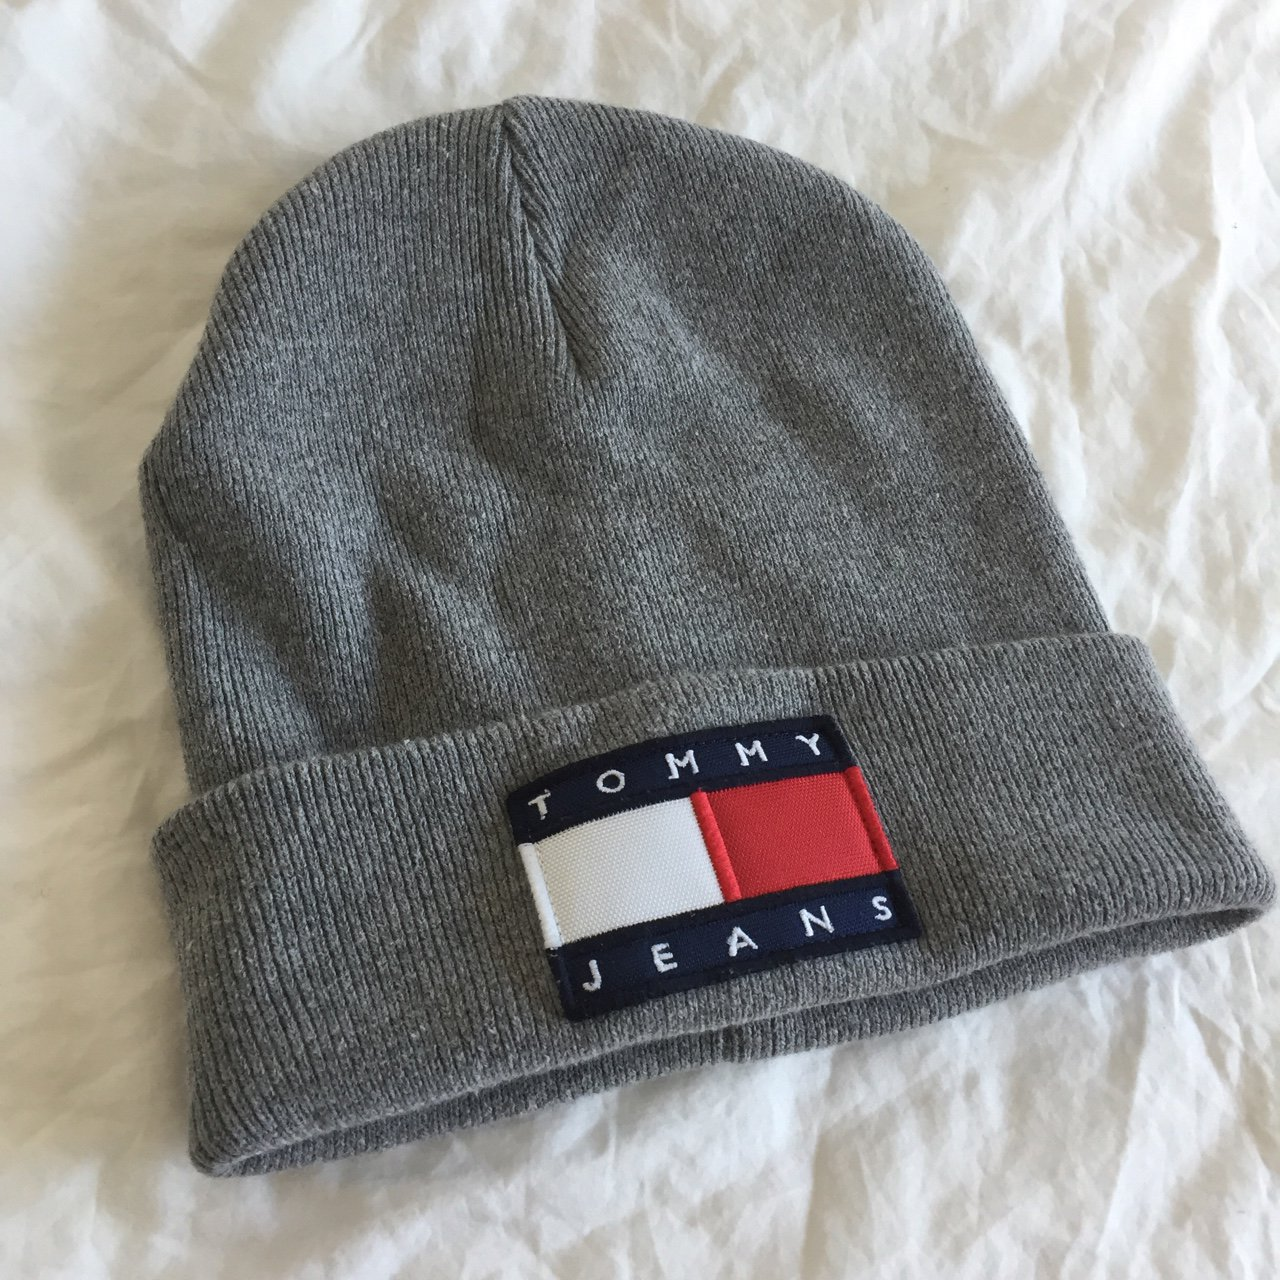 9f8bec41b12 Tommy Jeans beanie in Gray. Like new condition. Unisex. - Depop